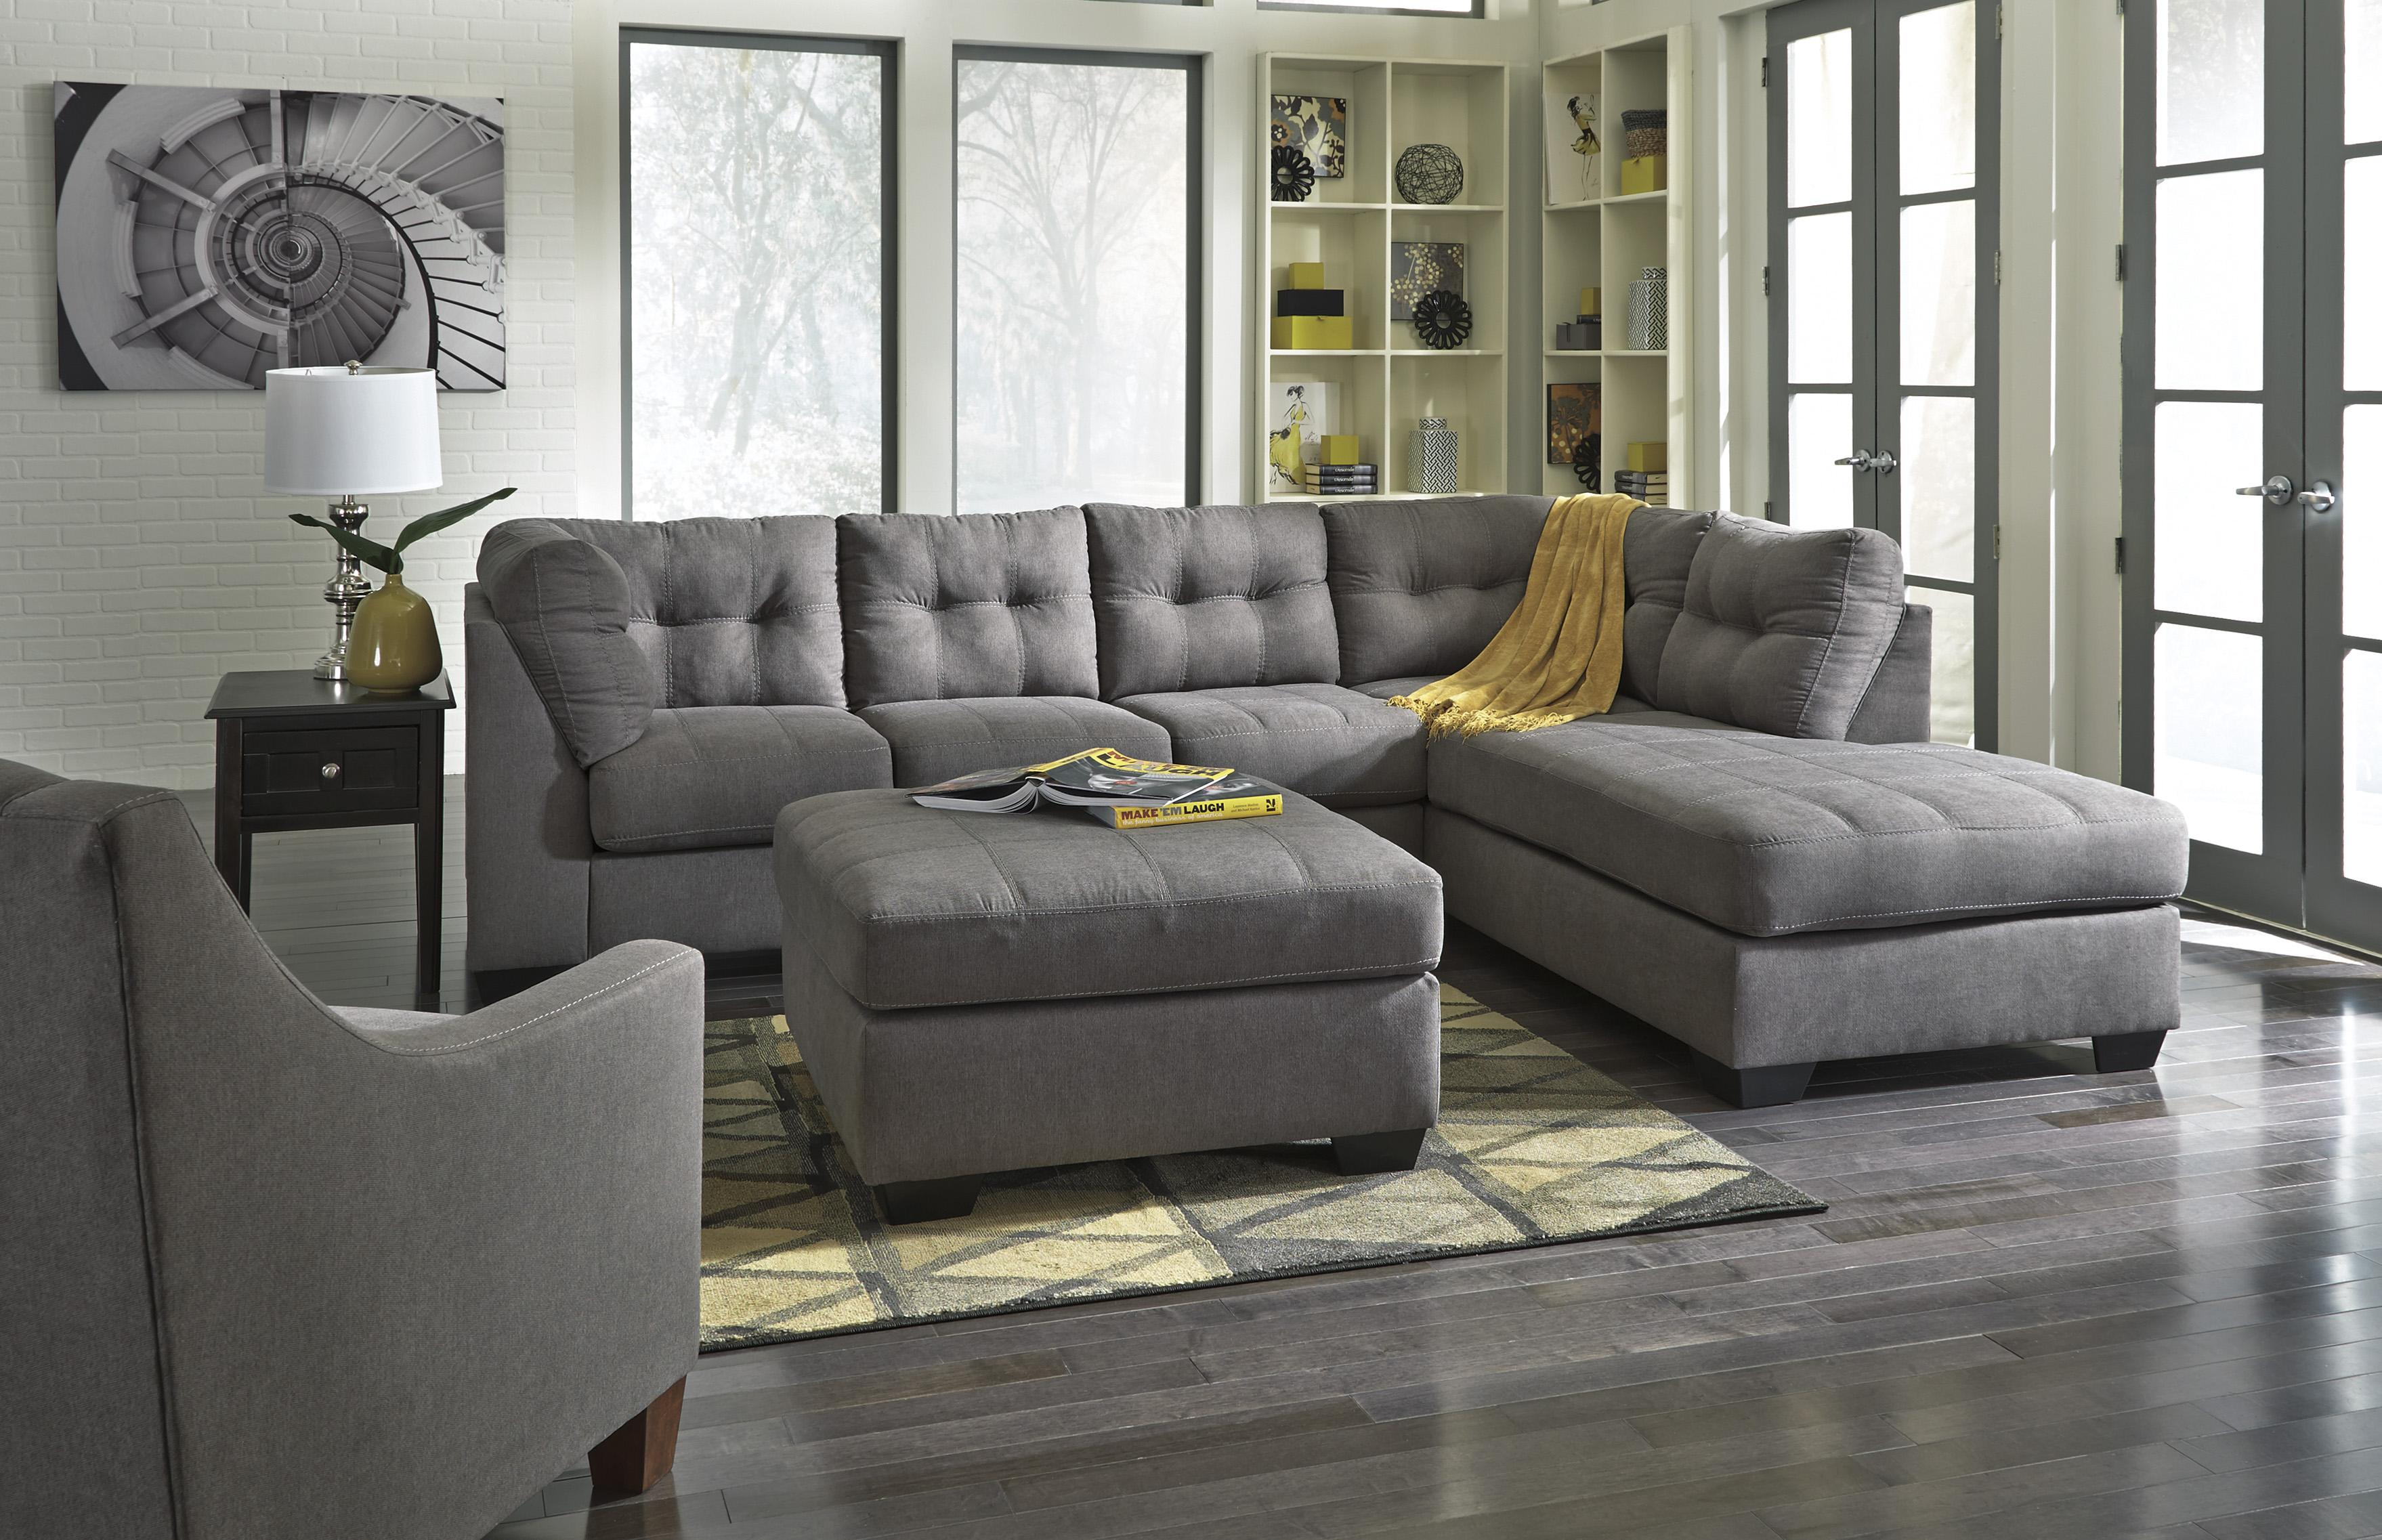 2-Piece Sectional with Right Chaise : raf sofa sectional - Sectionals, Sofas & Couches